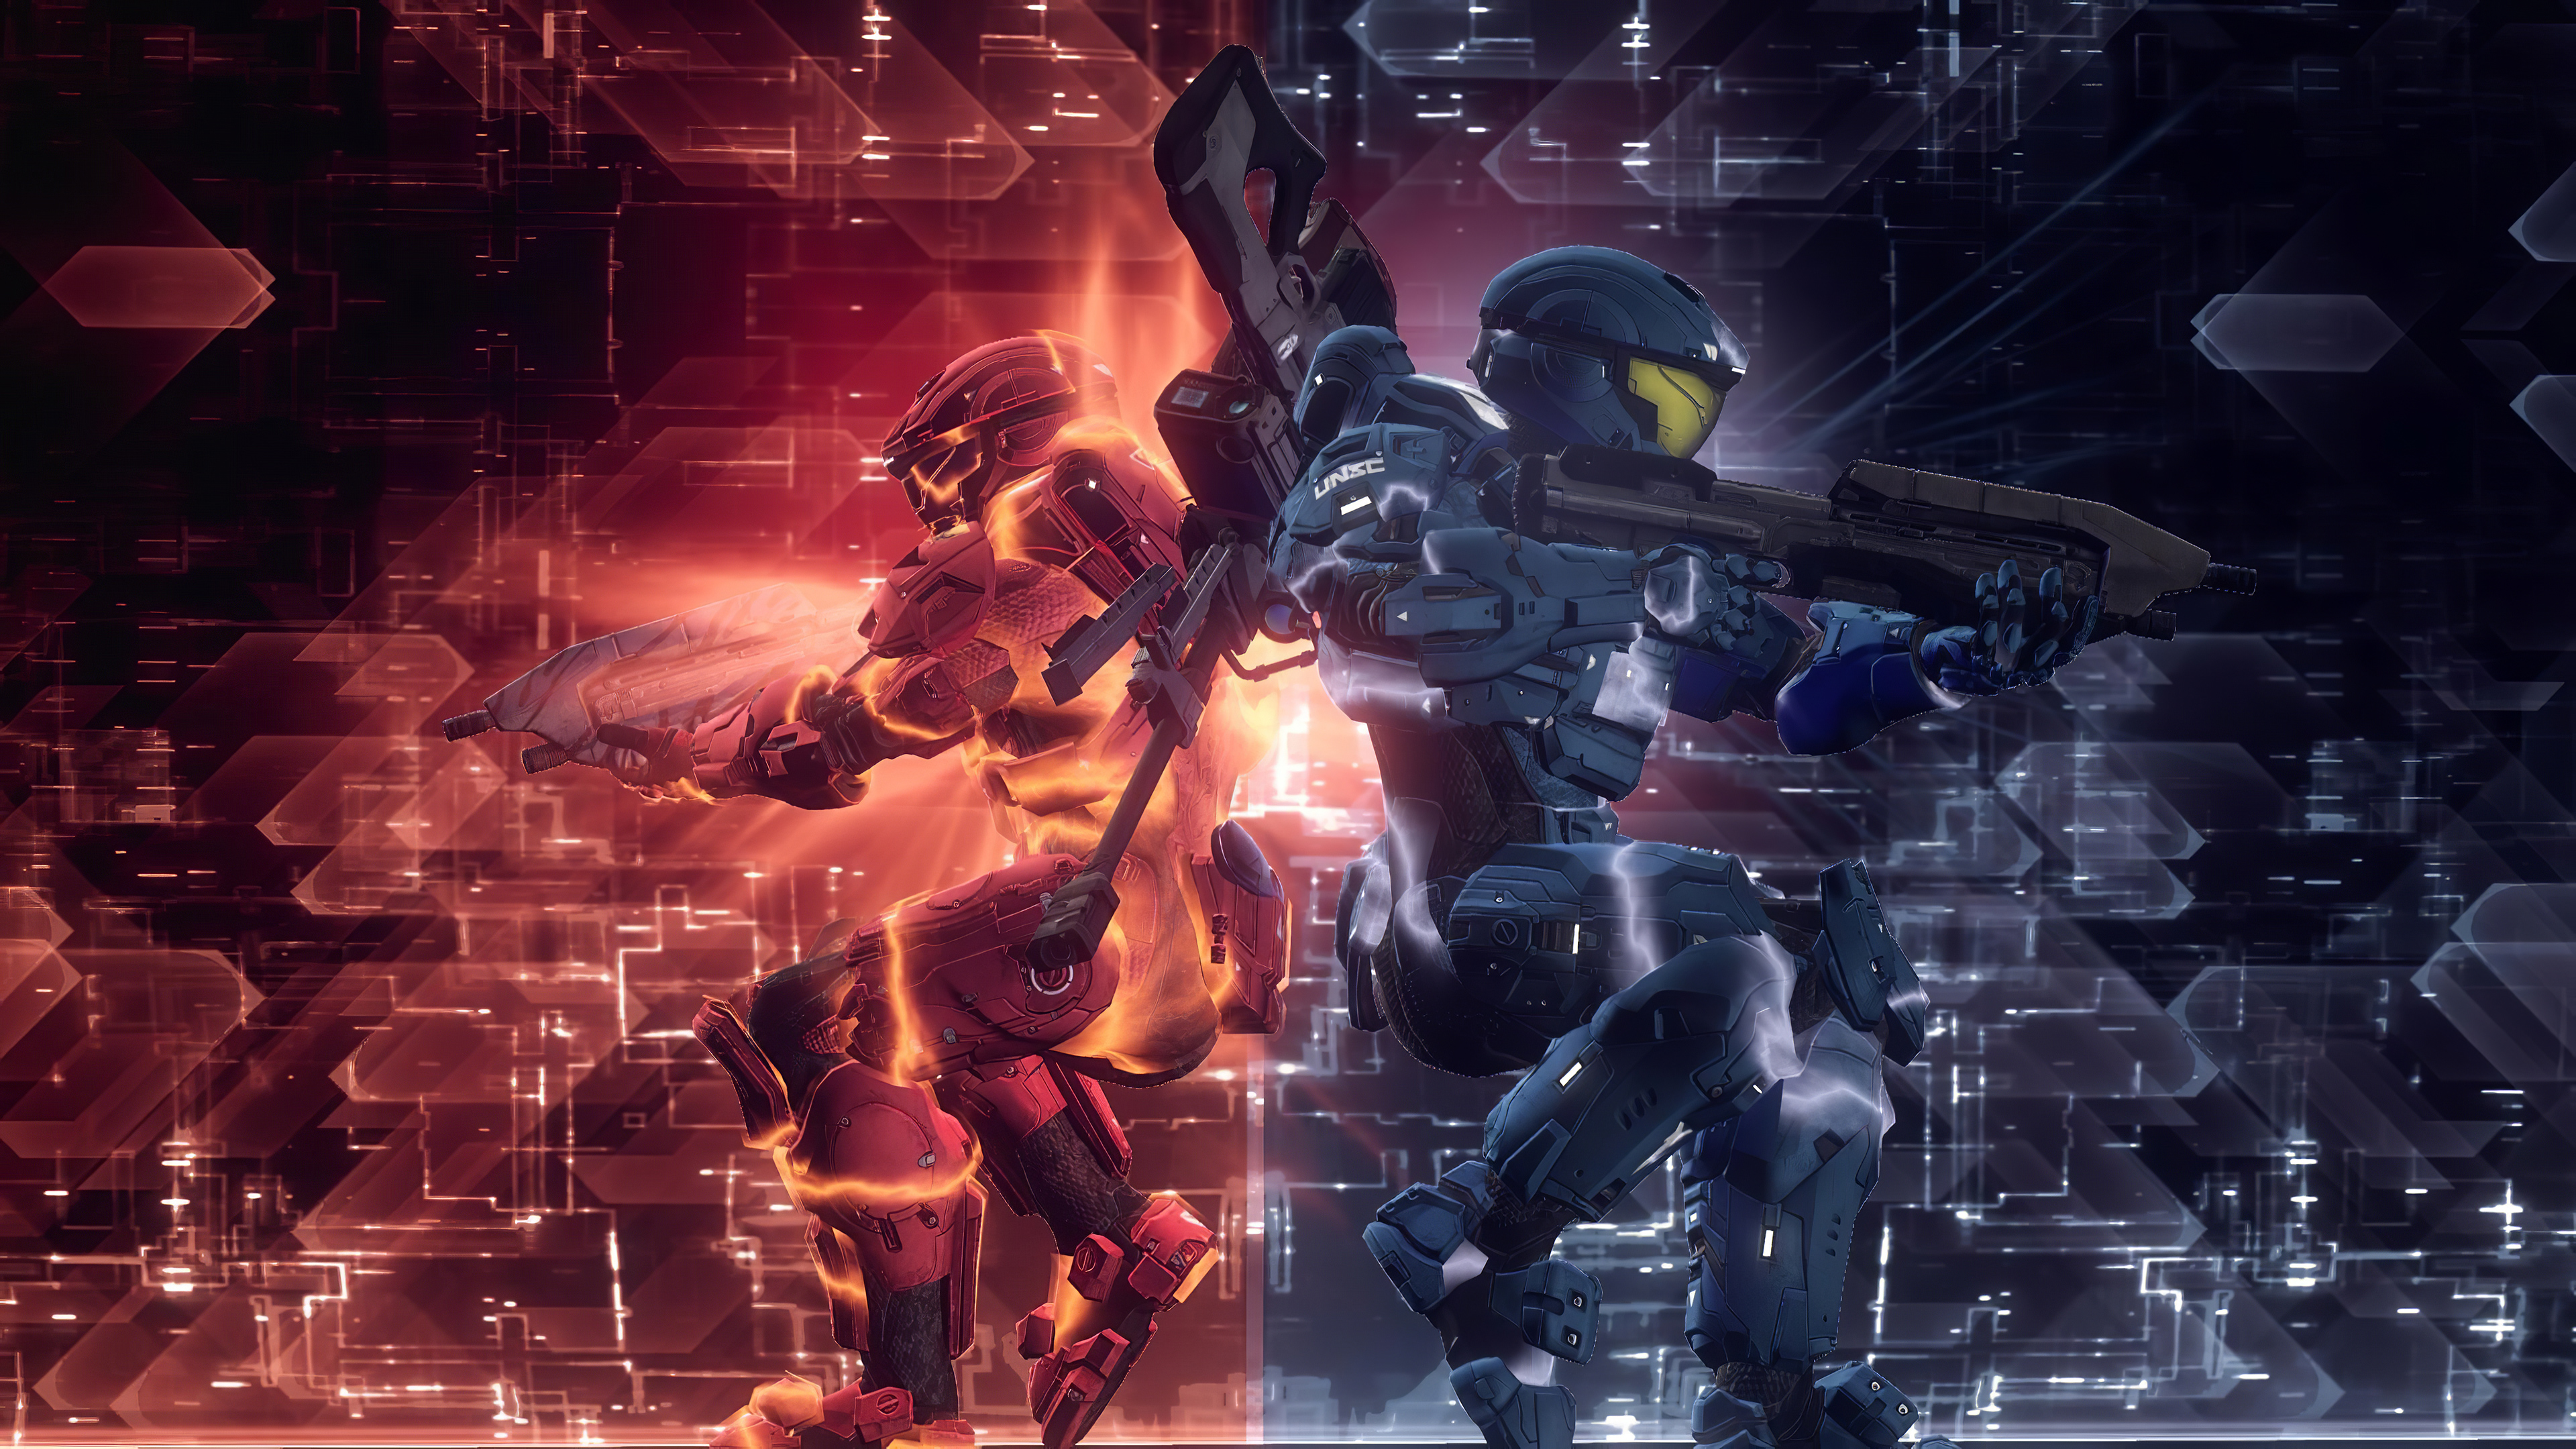 halo video game 1572370071 - Halo Video Game - hd-wallpapers, halo wallpapers, games wallpapers, 4k-wallpapers